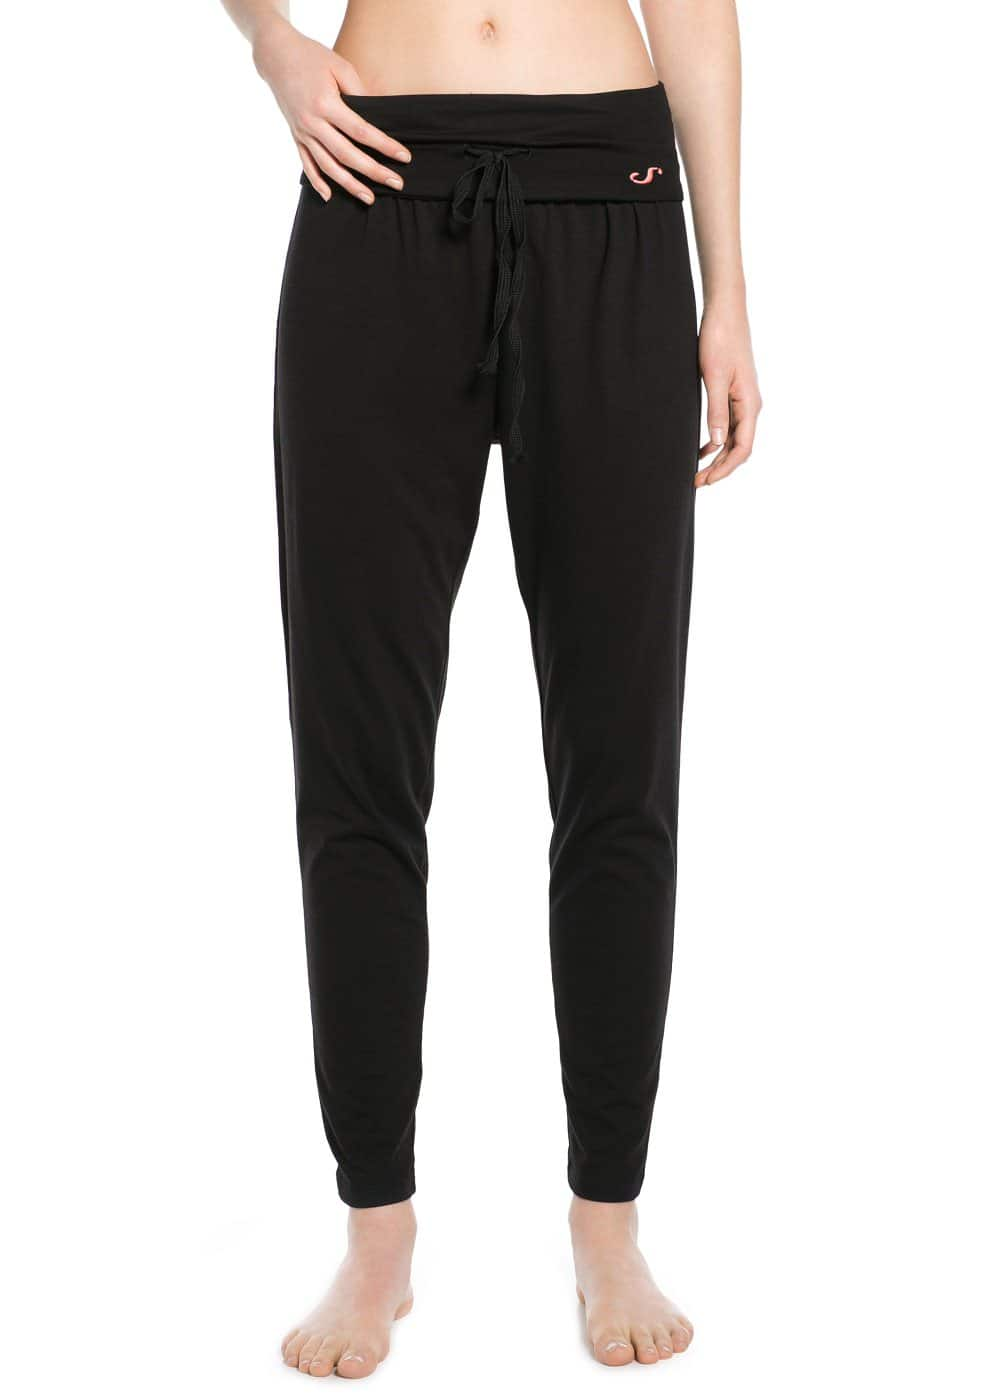 Yoga - Relax trousers